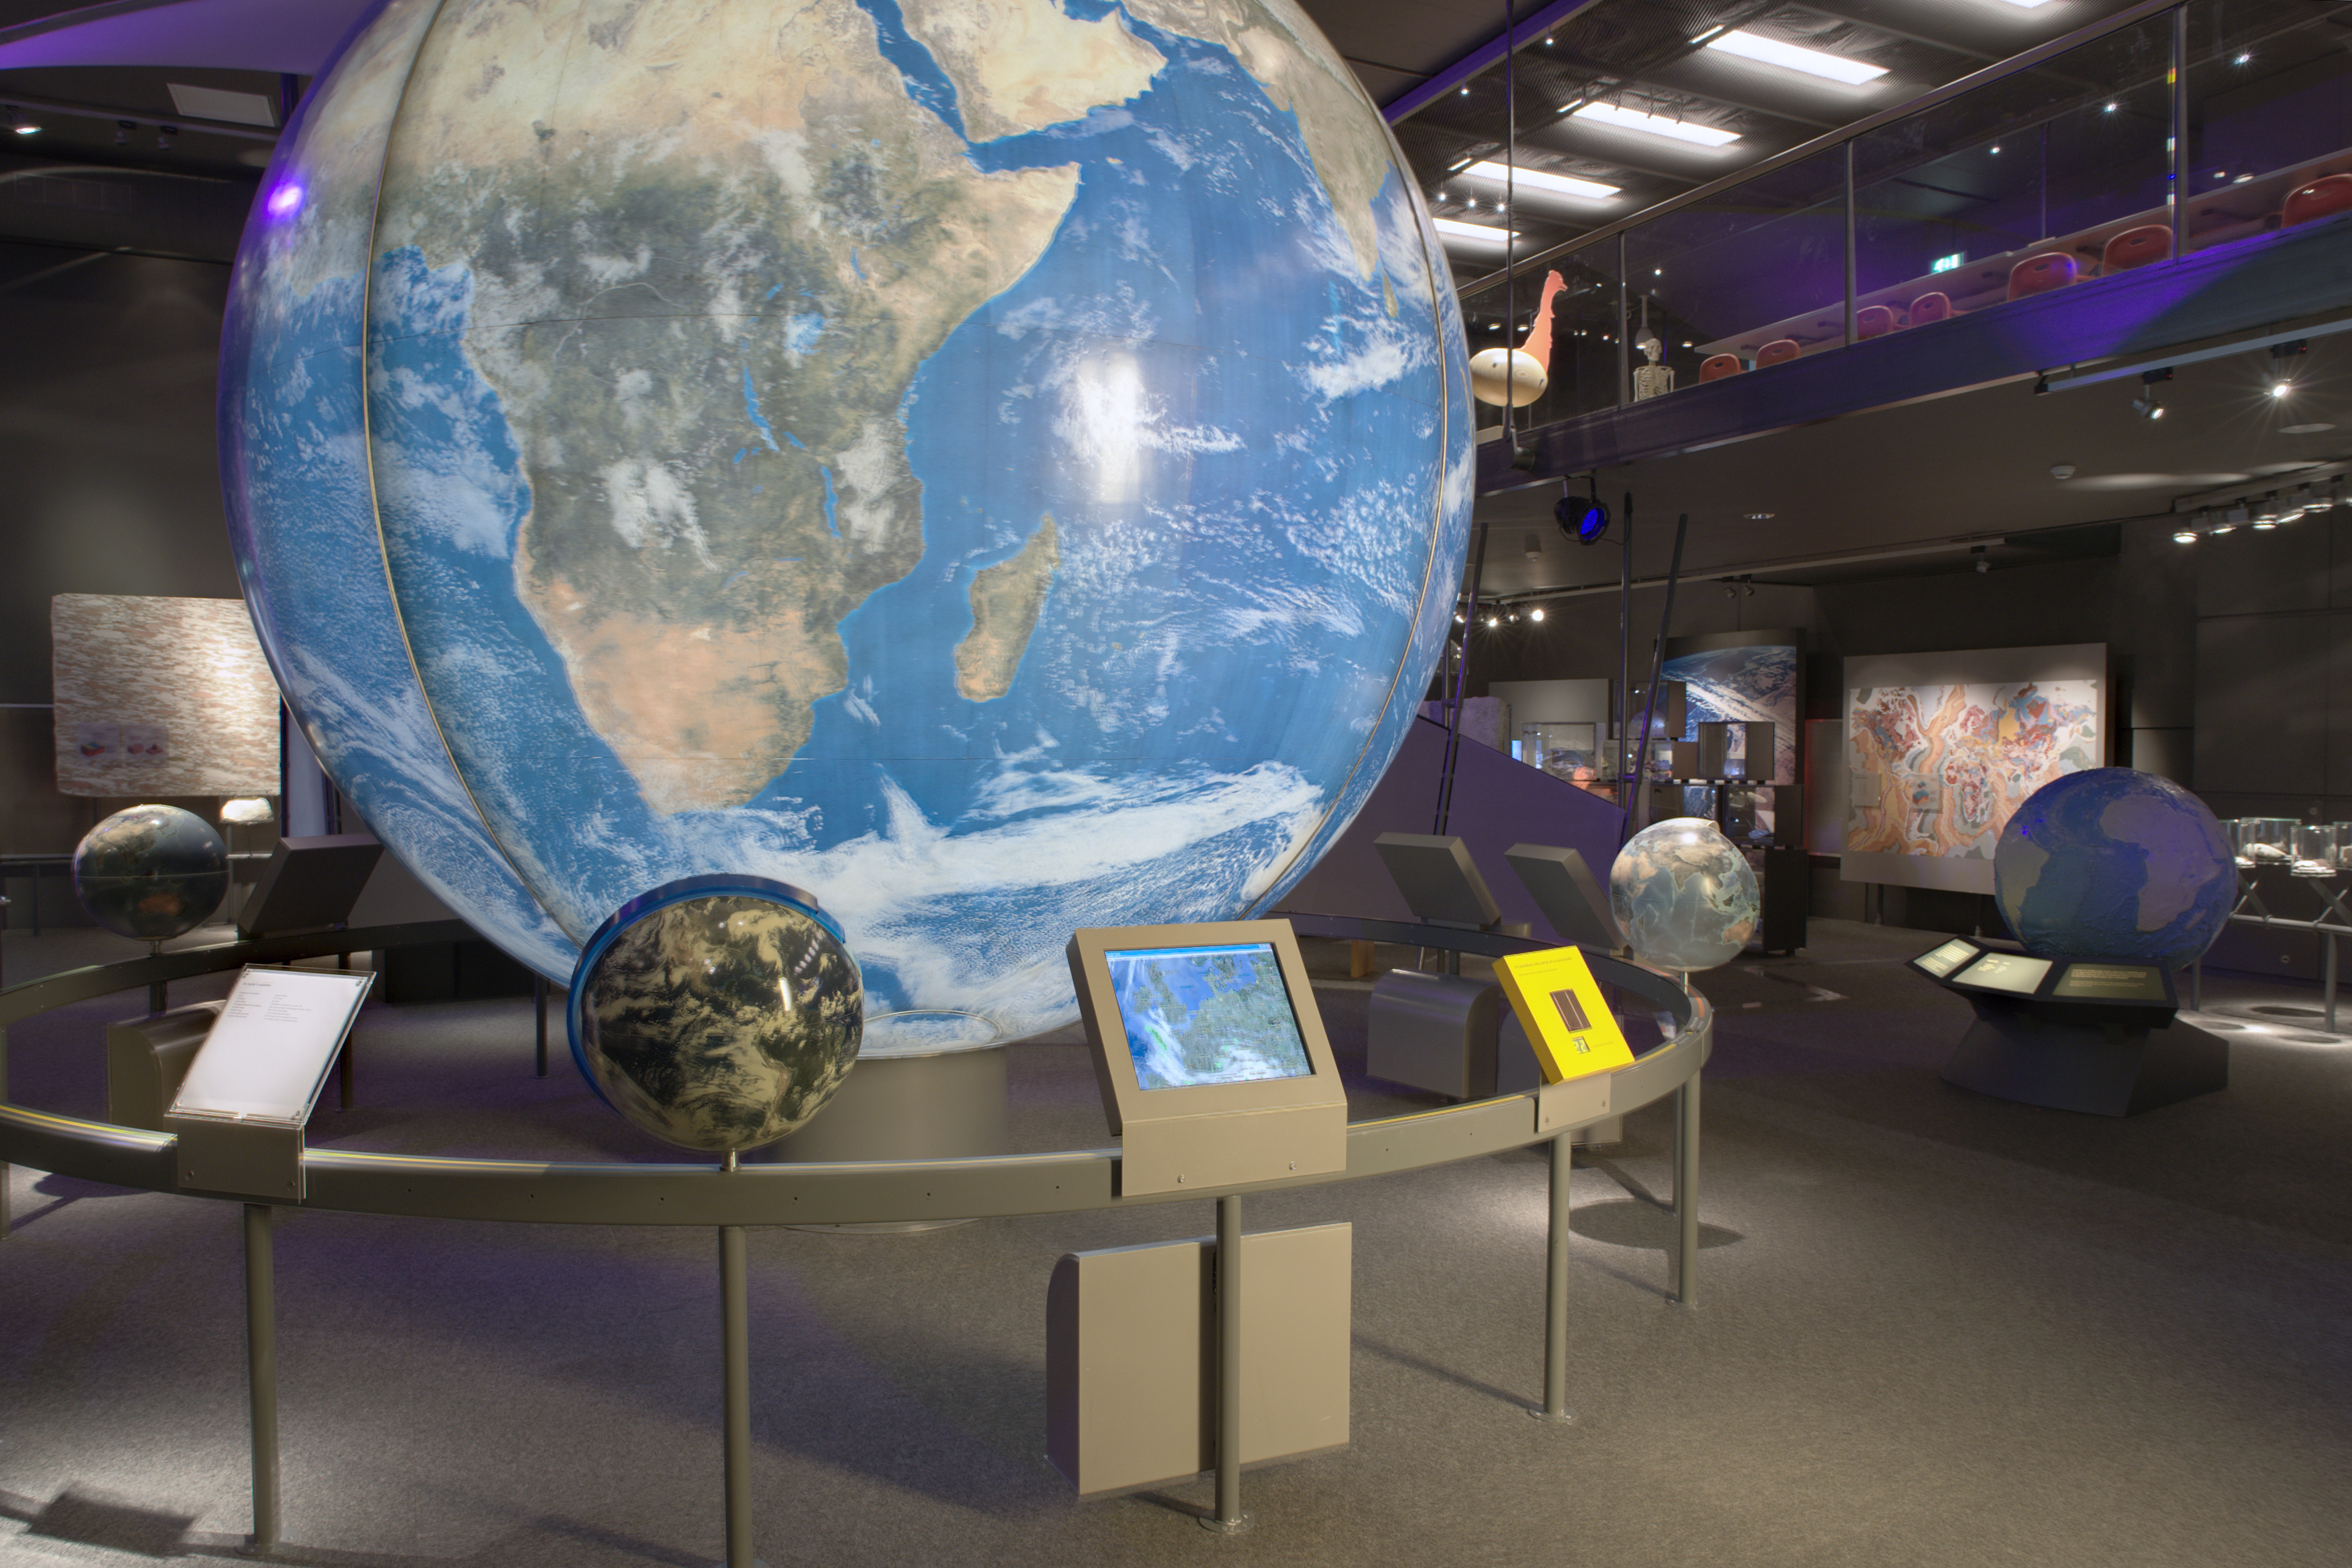 https://upload.wikimedia.org/wikipedia/commons/c/c4/Naturalis_Biodiversity_Center_-_Museum_-_Exhibition_Earth_08_-_Huge_globe_with_Africa_showing%2C_overview.jpg